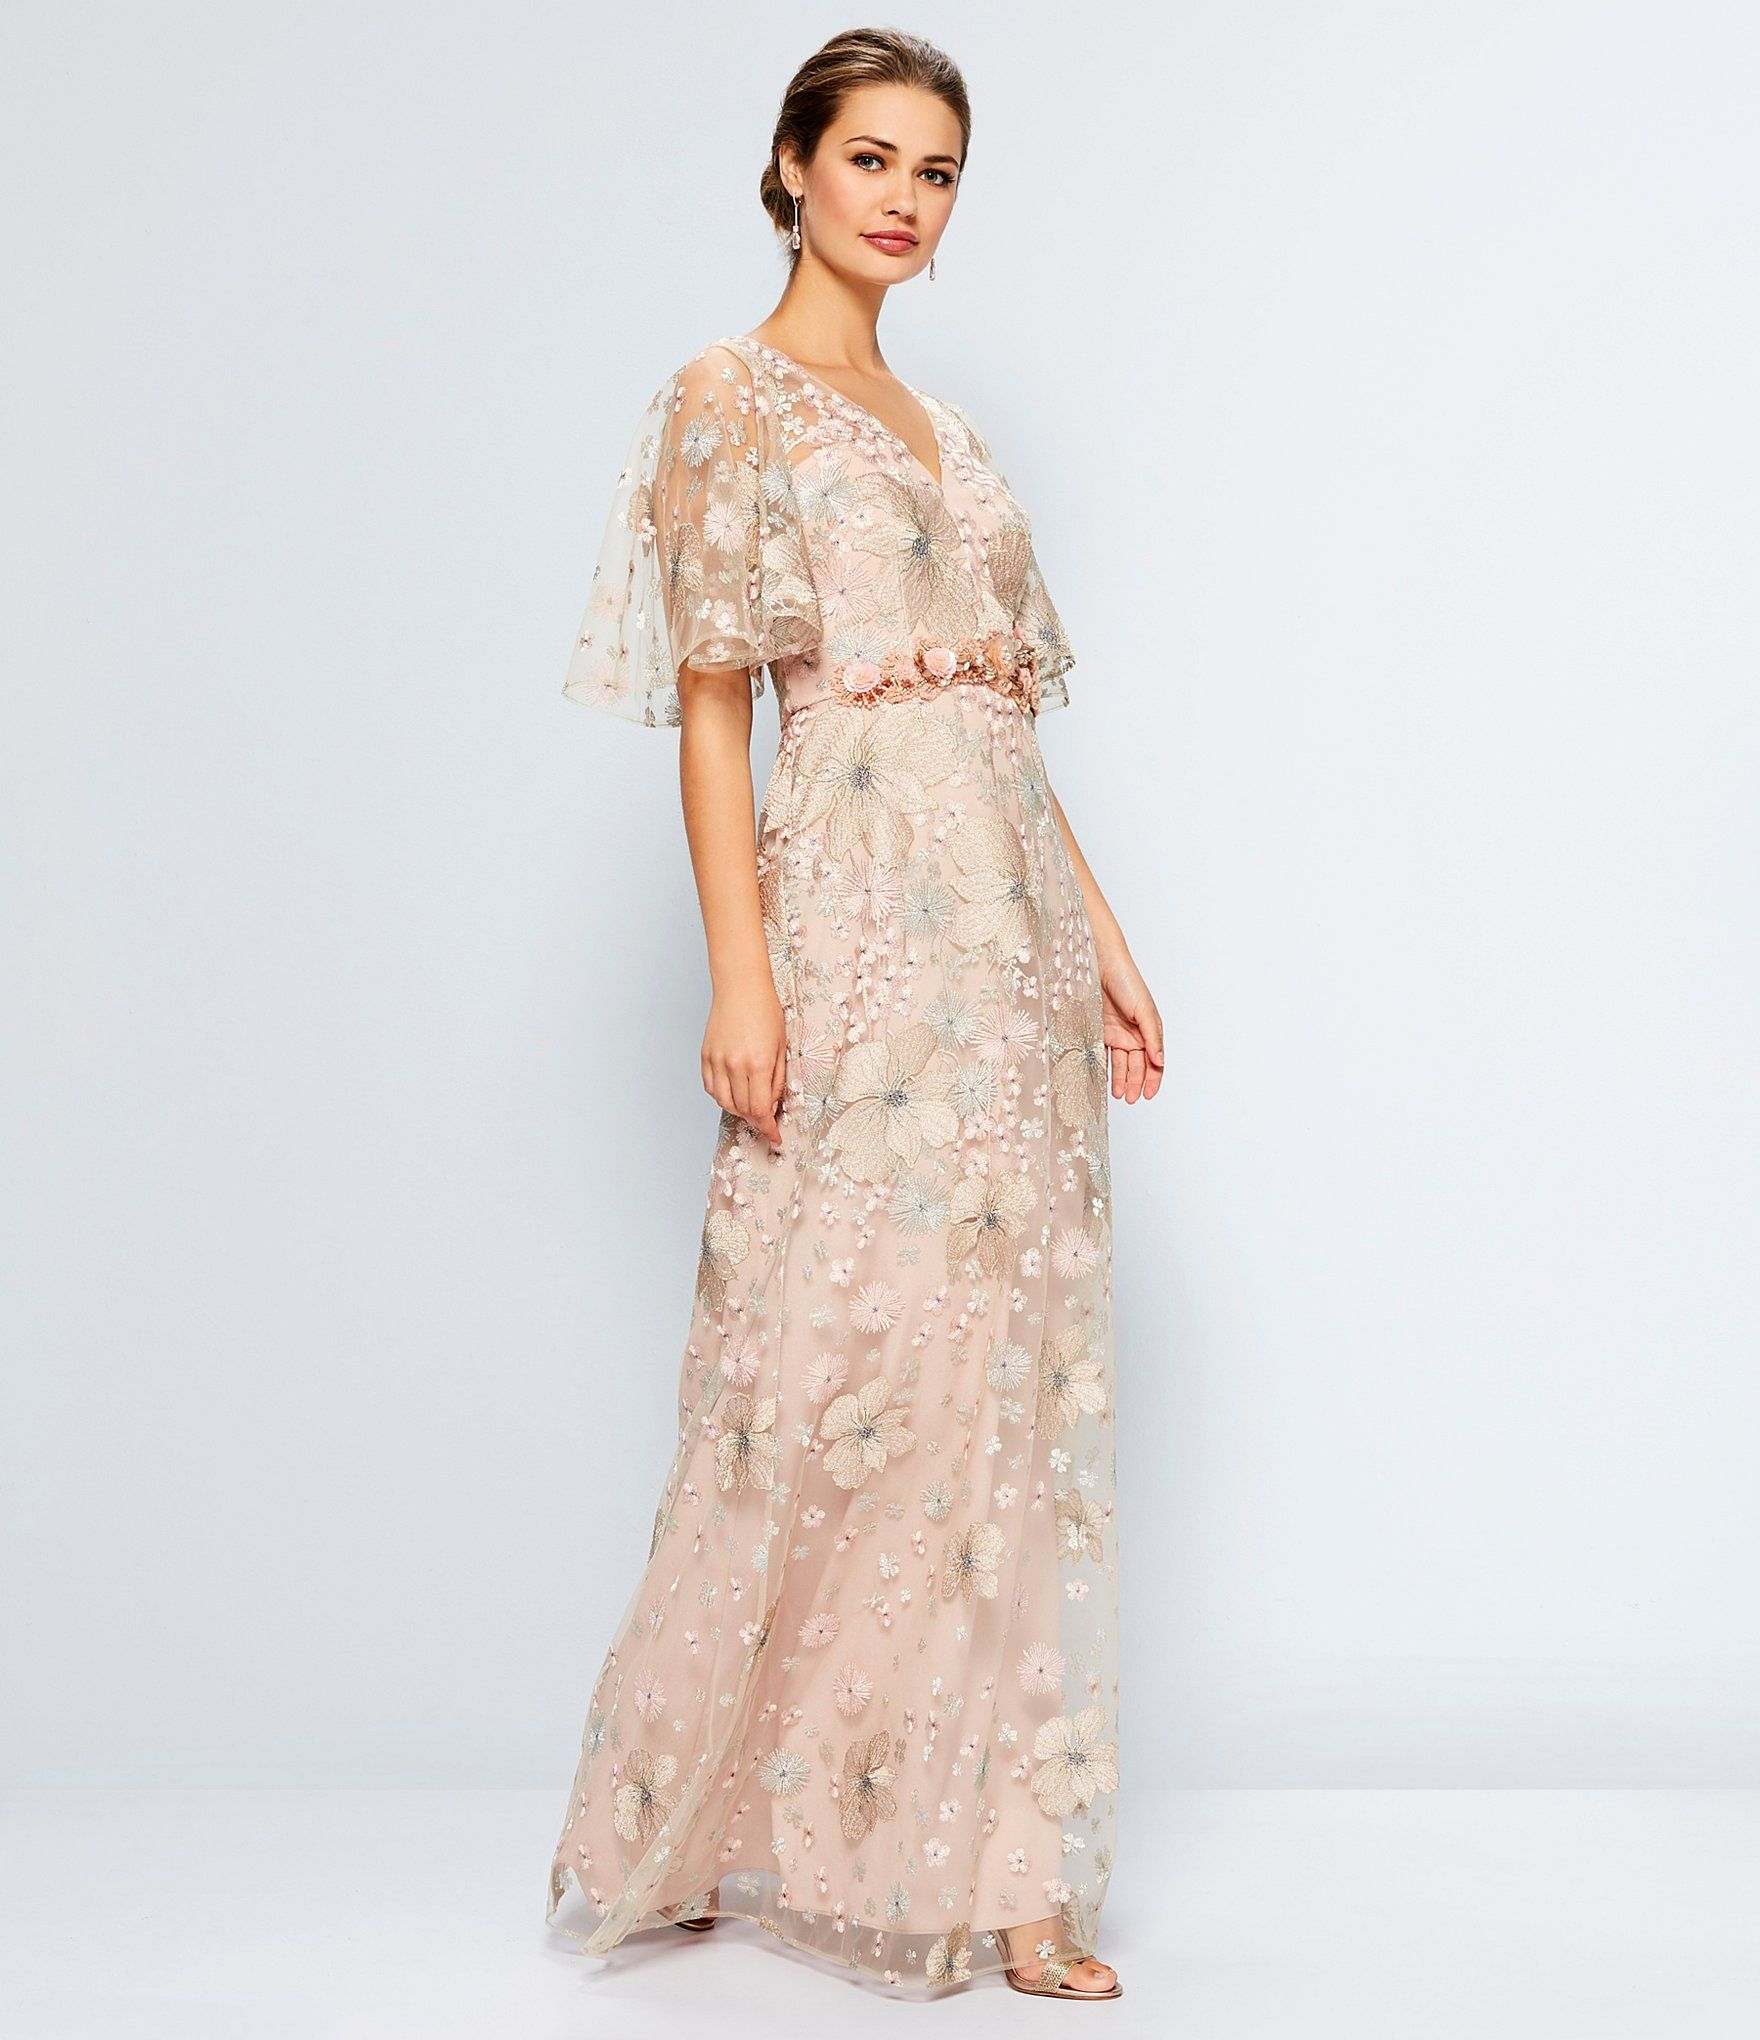 Outdoor Wedding Mother Of The Bride Dresses: David Meister Soft Embroidered Beaded Gown